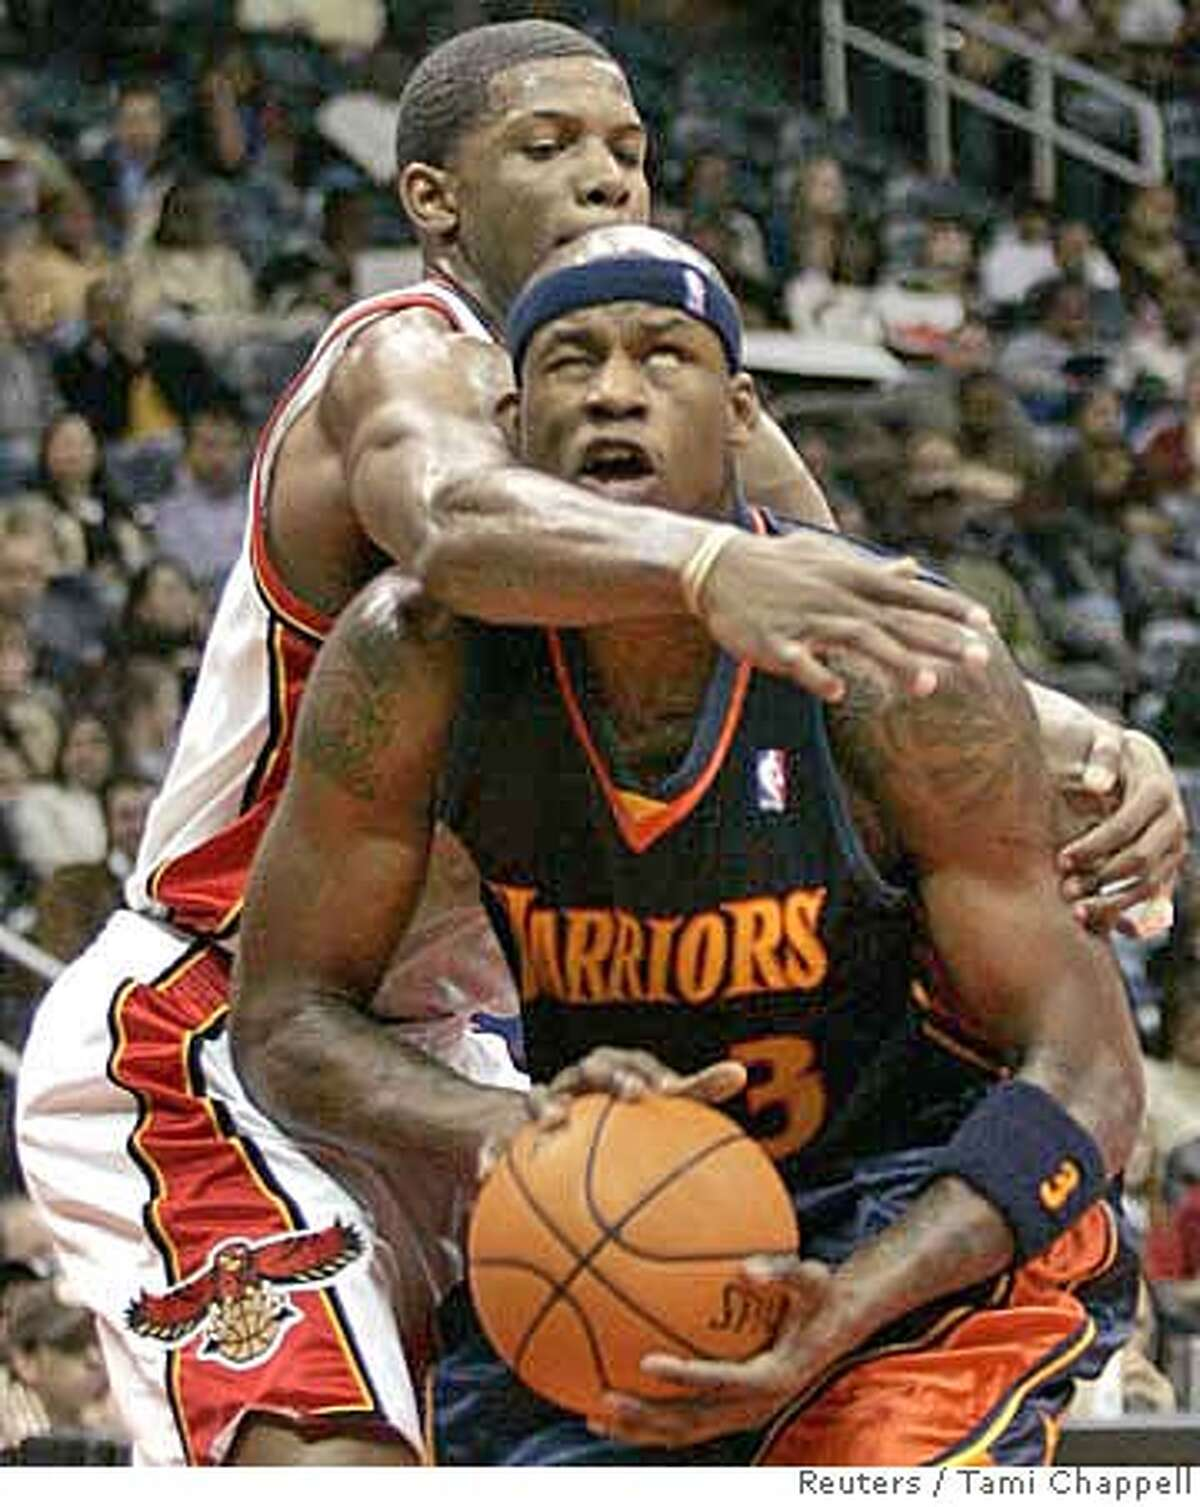 Golden State Warriors forward Al Harrington is fouled under the basket by Atlanta Hawks guard Joe Johnson (rear) in the first half of their NBA basketball game in Atlanta, Georgia January 31, 2007. REUTERS/Tami Chappell (UNITED STATES)